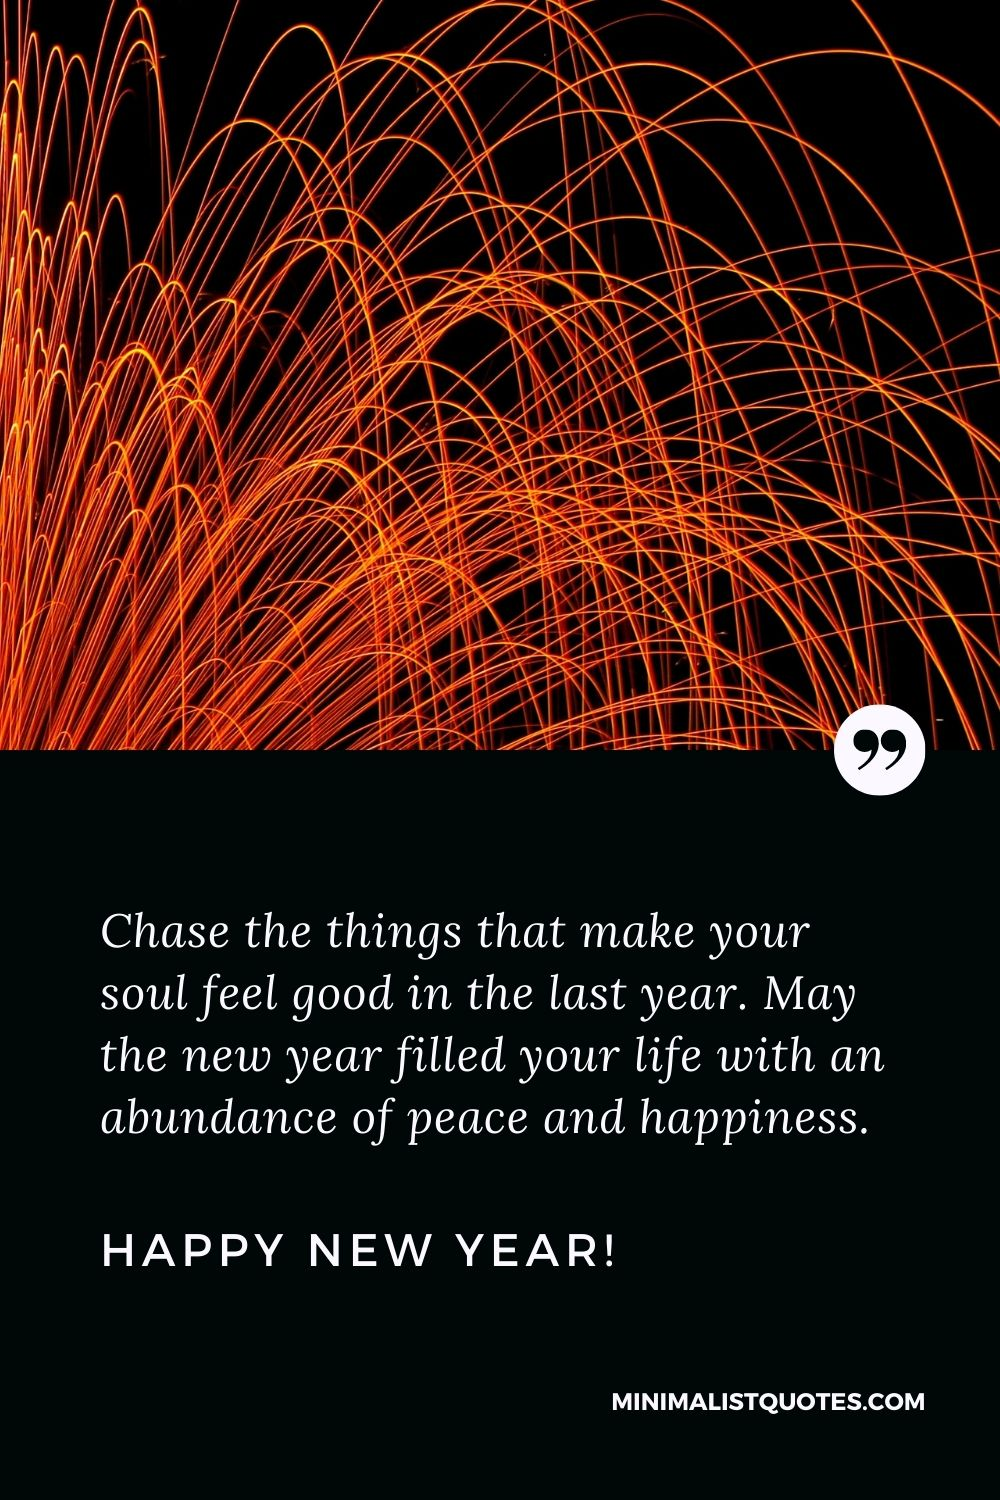 New year blessings quotes: Chasethe things thatmakeyour soul feel good in the lastyear. May the new year filled your life with anabundanceof peace and happiness. Happy New Year!